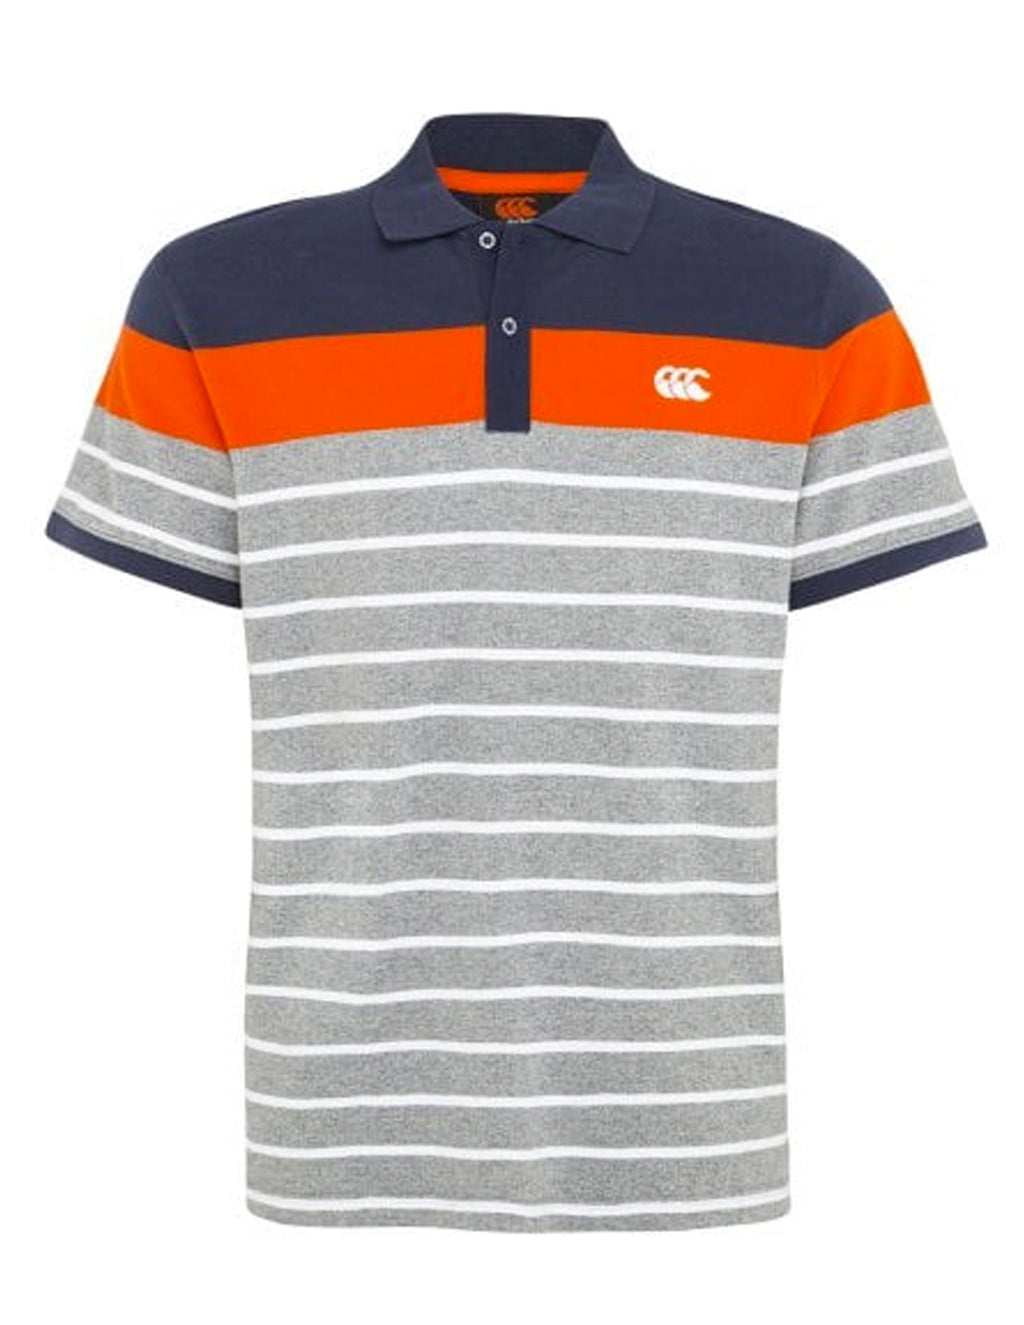 Engineer Stripe Polo